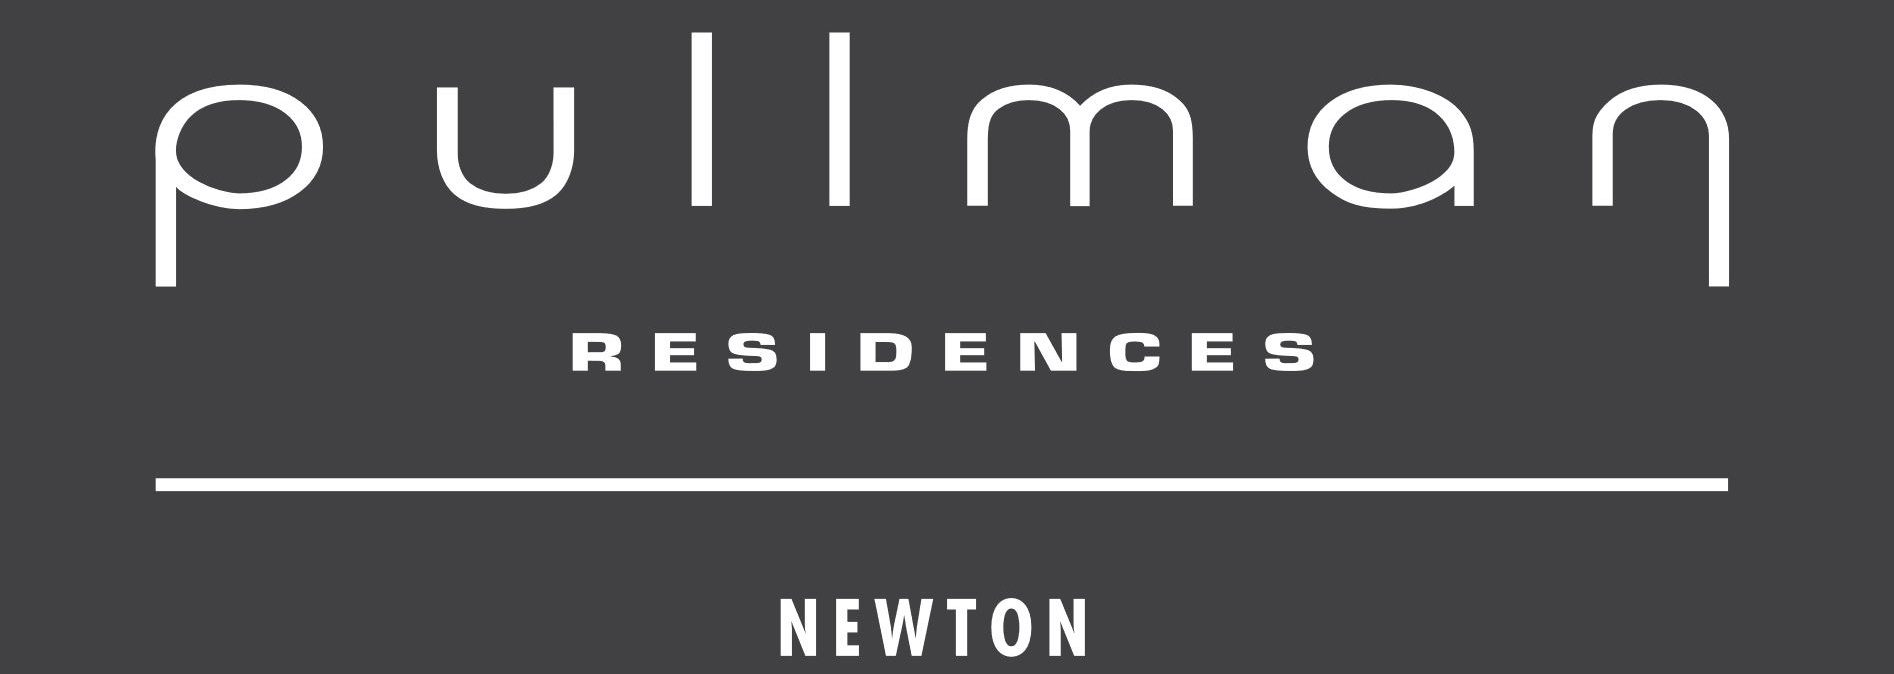 pullman-residences-condo-logo-updated